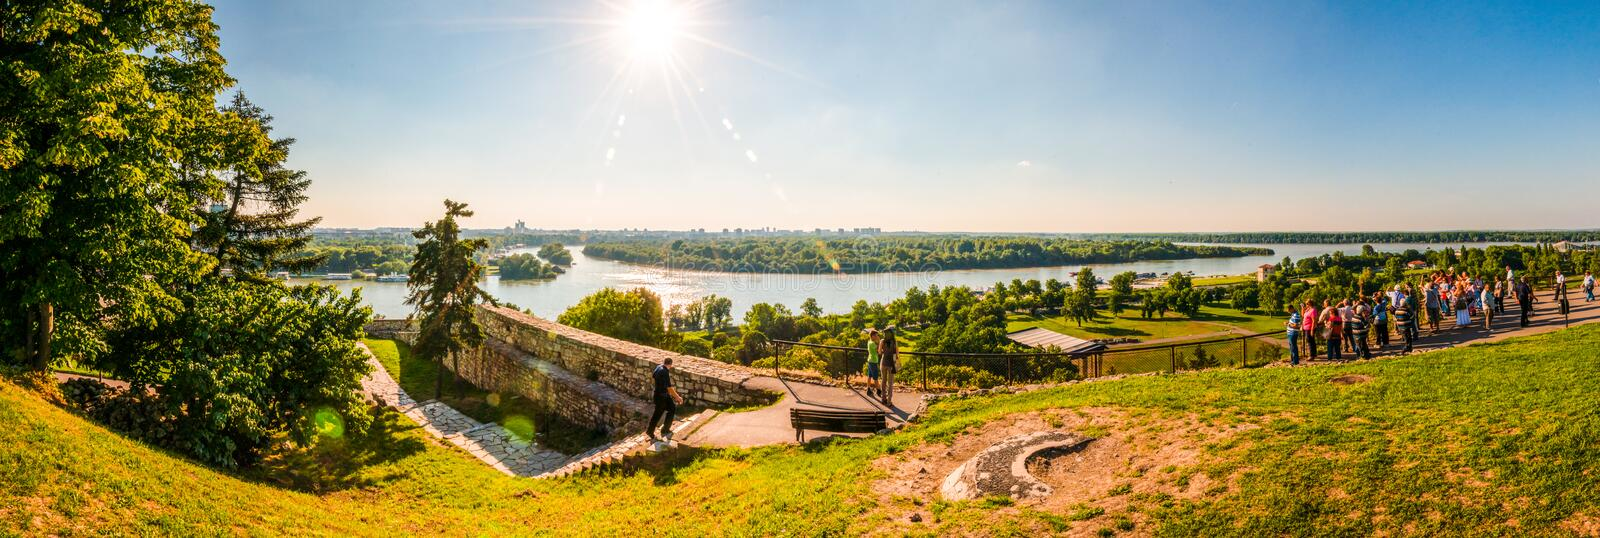 The famous fortress in Belgrade, the complex located on the hill with scenic panoramic cityscape view. Tourists traveling and royalty free stock photography